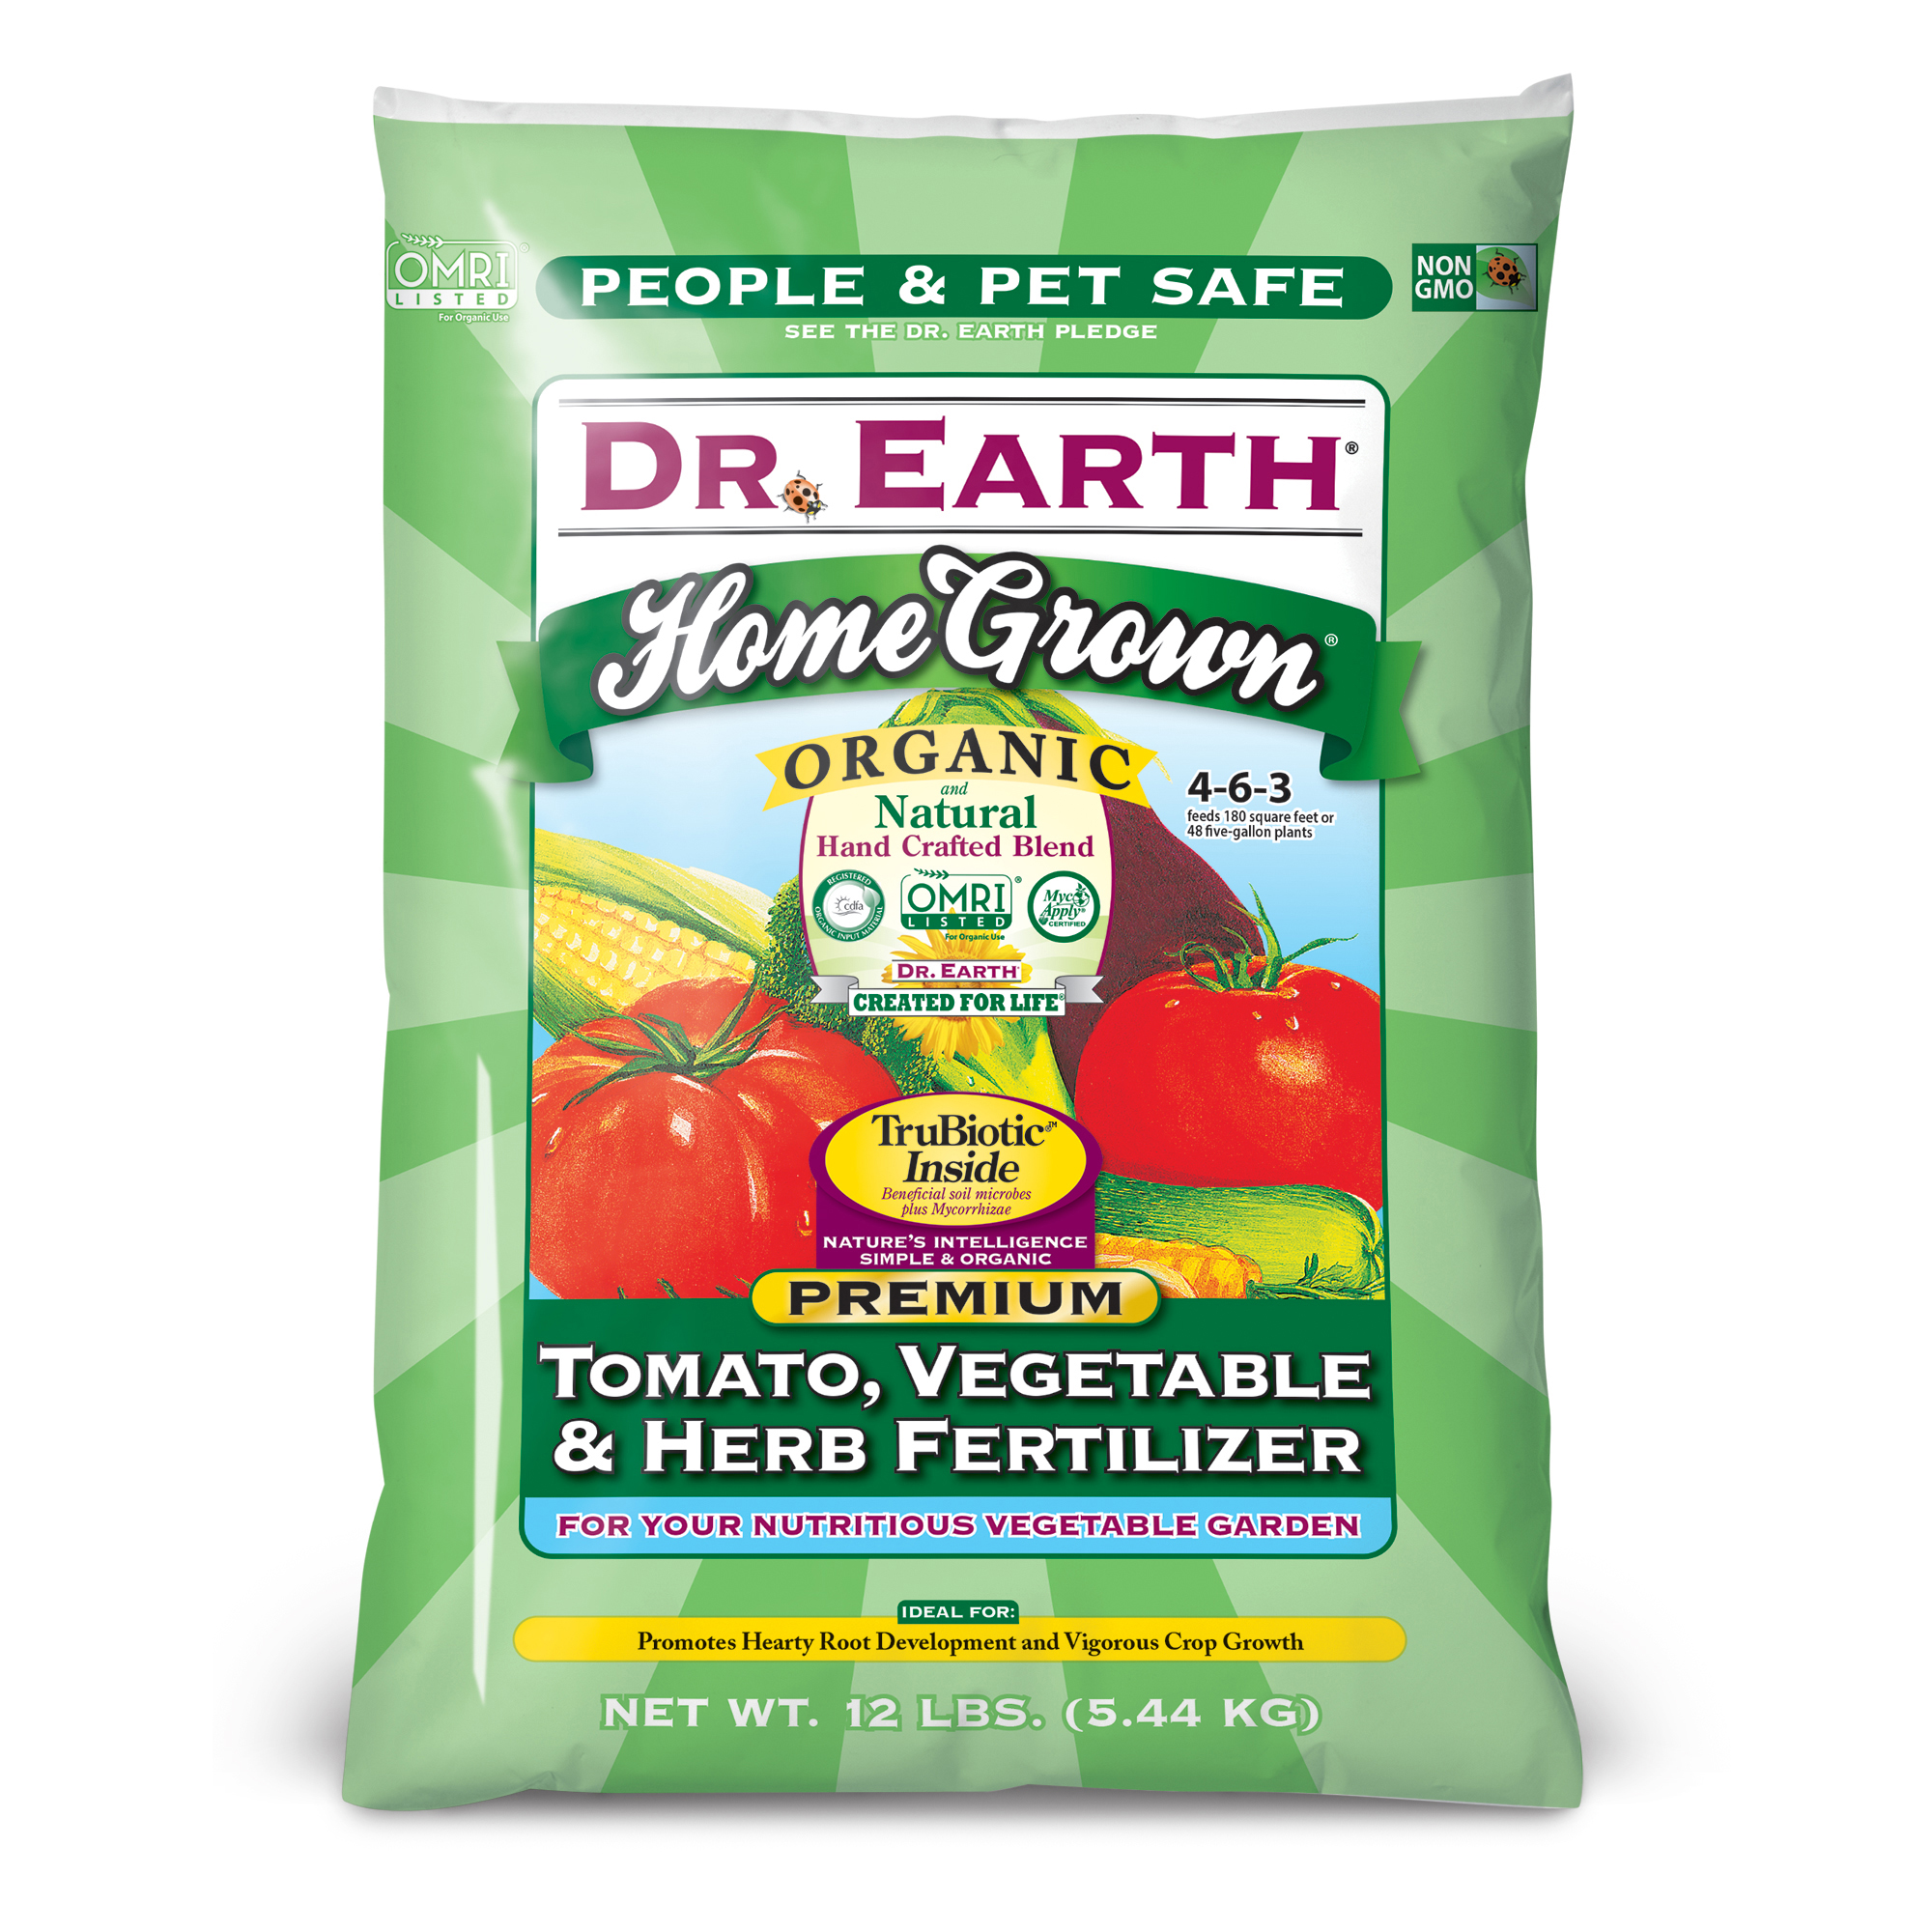 HOME GROWN® TOMATO, VEGETABLE & HERB FERTILIZER 12lb